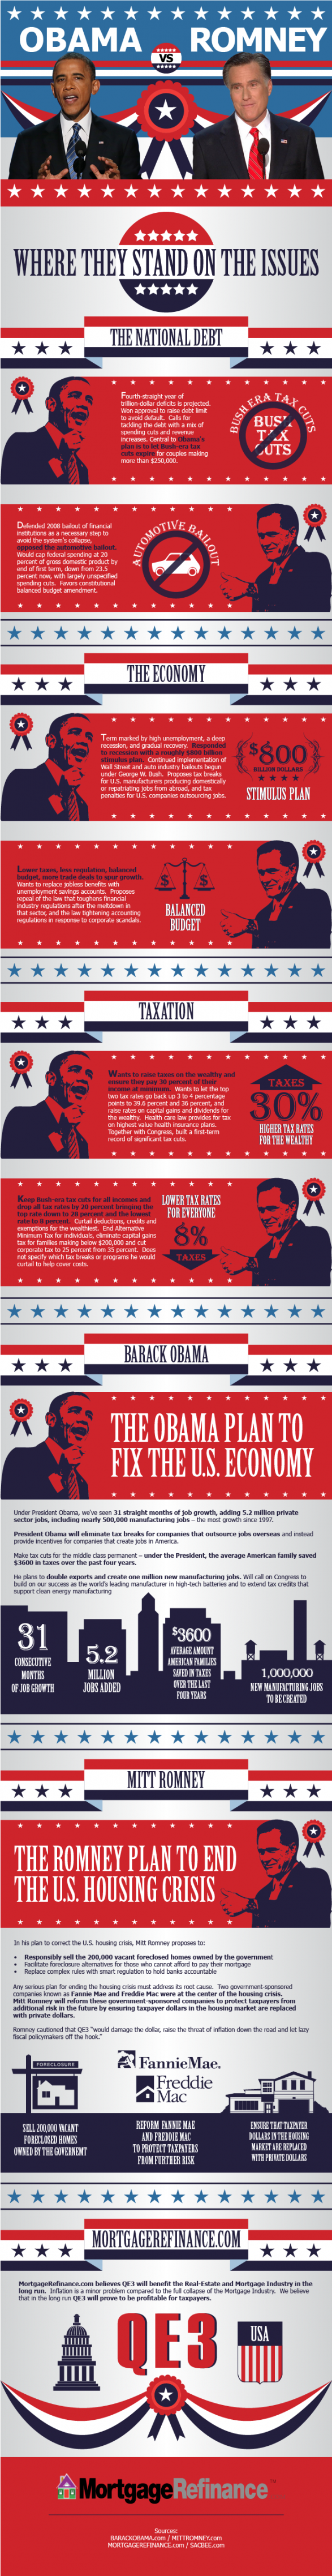 Obama vs. Romney: Where They Stand